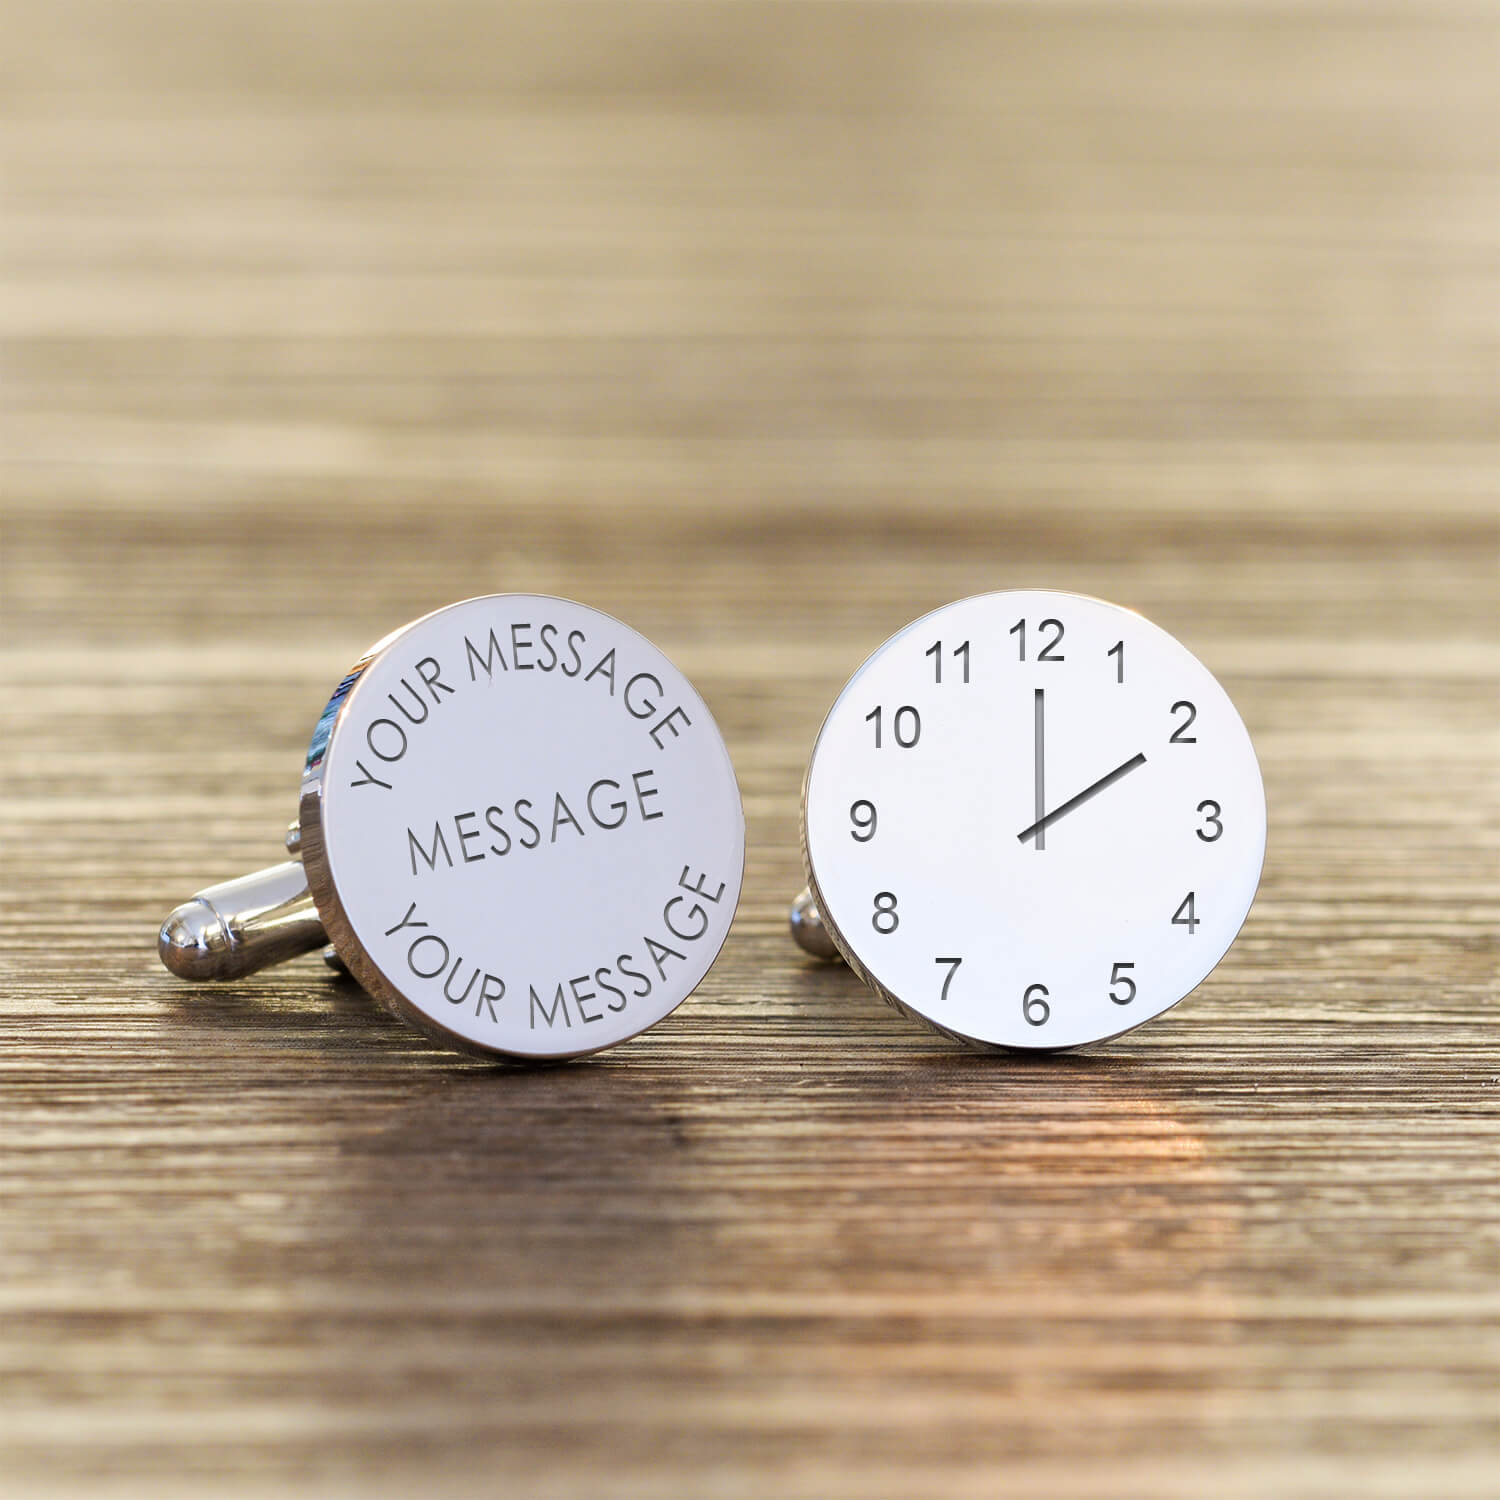 Personalised Cufflinks – Your Message & Time